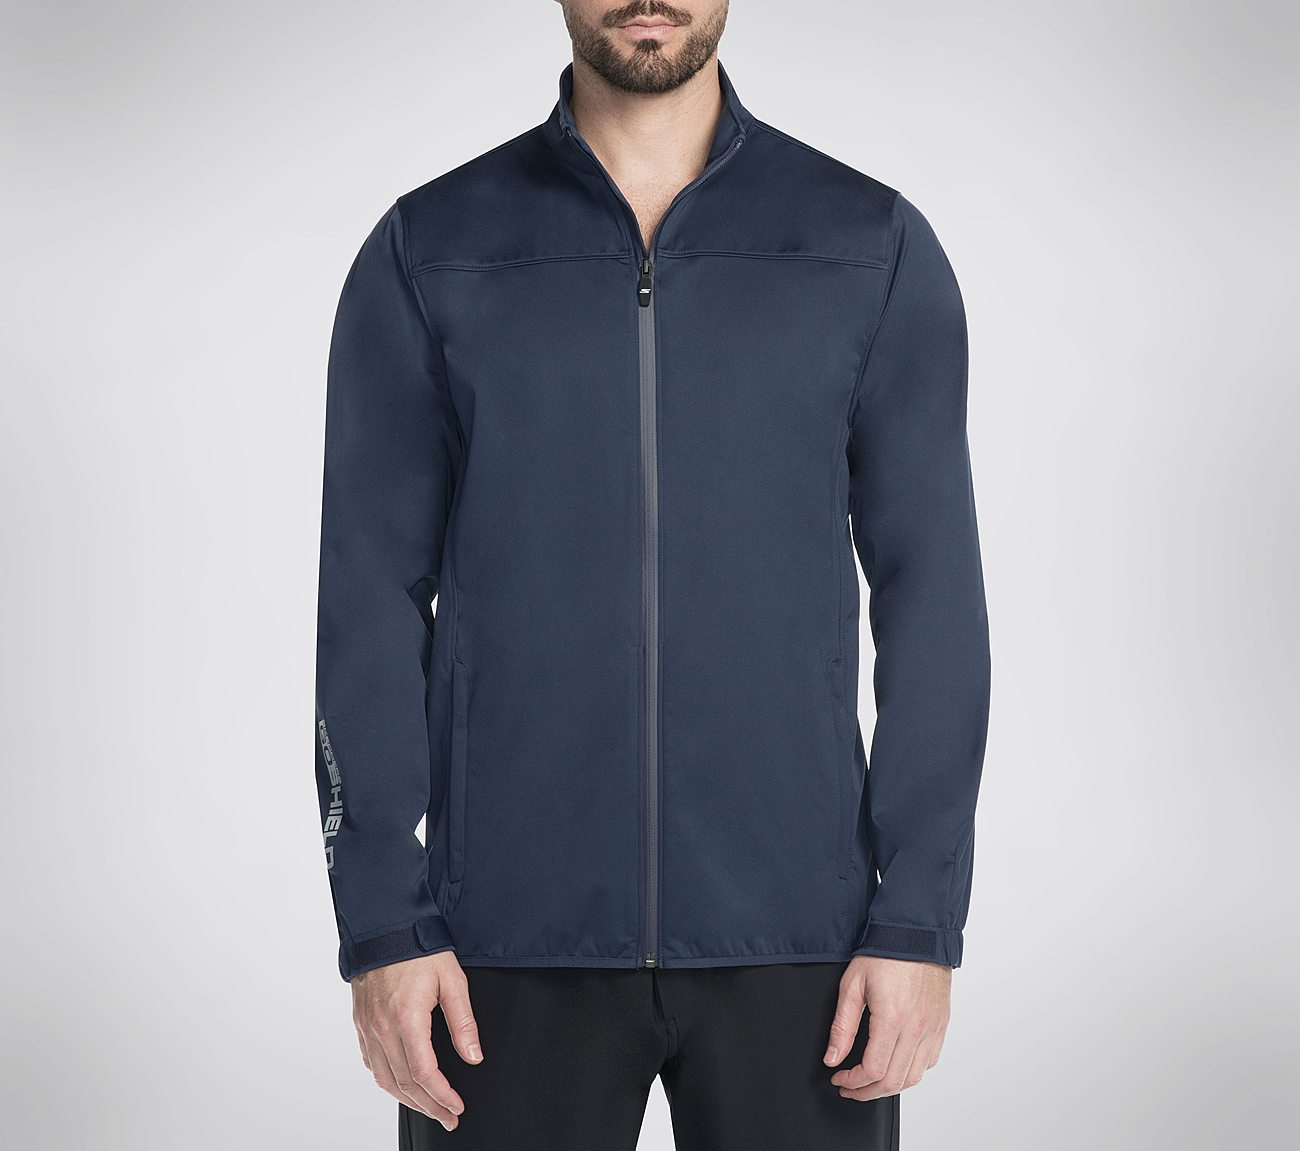 Men's Skechers GOShield Elite Fullzip Jacket